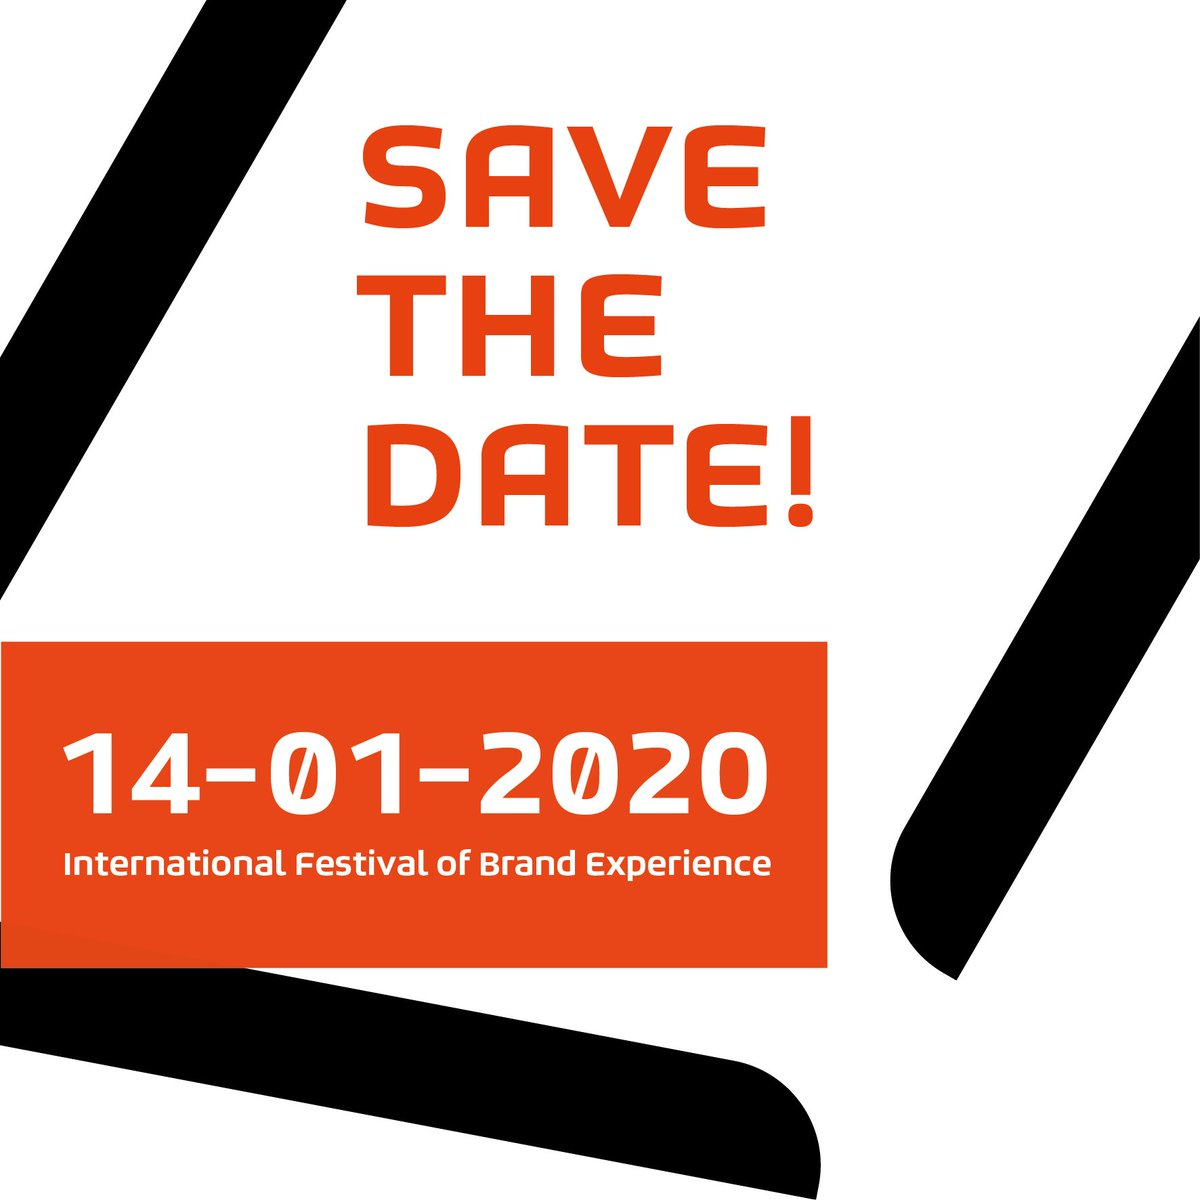 #BRANDEX is coming❗️→14.01.2020  Save the Date! #BRANDEX findet am 14.01., dem Vortag der #boe20, statt. 🎉  __ #BRANDEX is coming❗️→14.01.2020  Save the Date! #BRANDEX takes place: 14.01., the day before #boe20 🎉   #dontmissit #brandex20 #eventprofs #event #itshappening